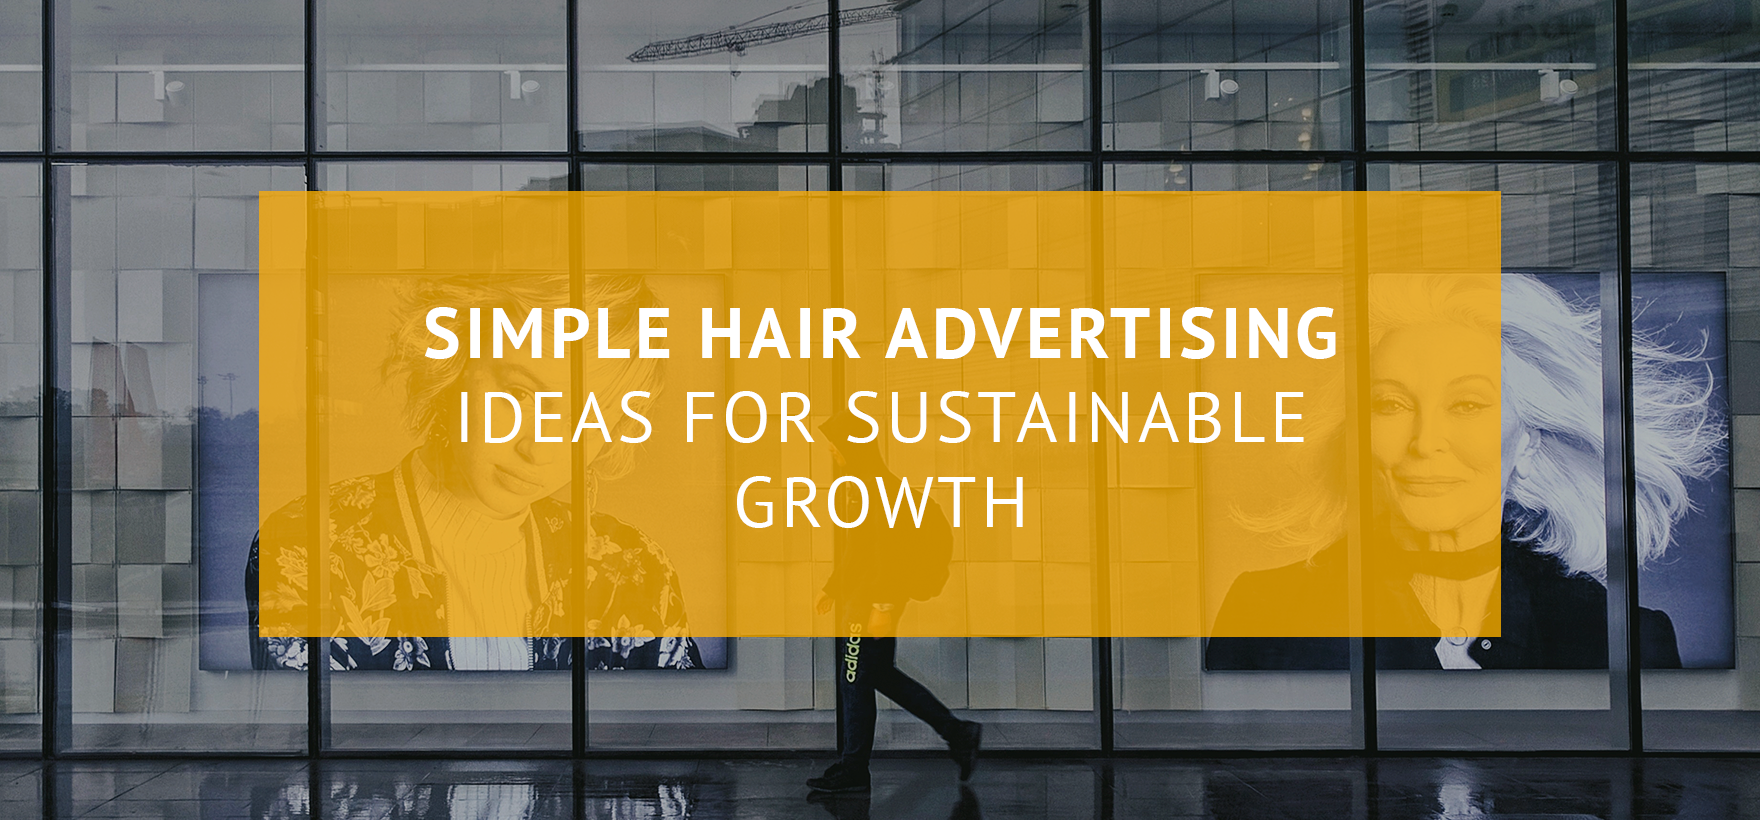 Beauty Salon Advertising Ideas and Examples for Sustainable Growth